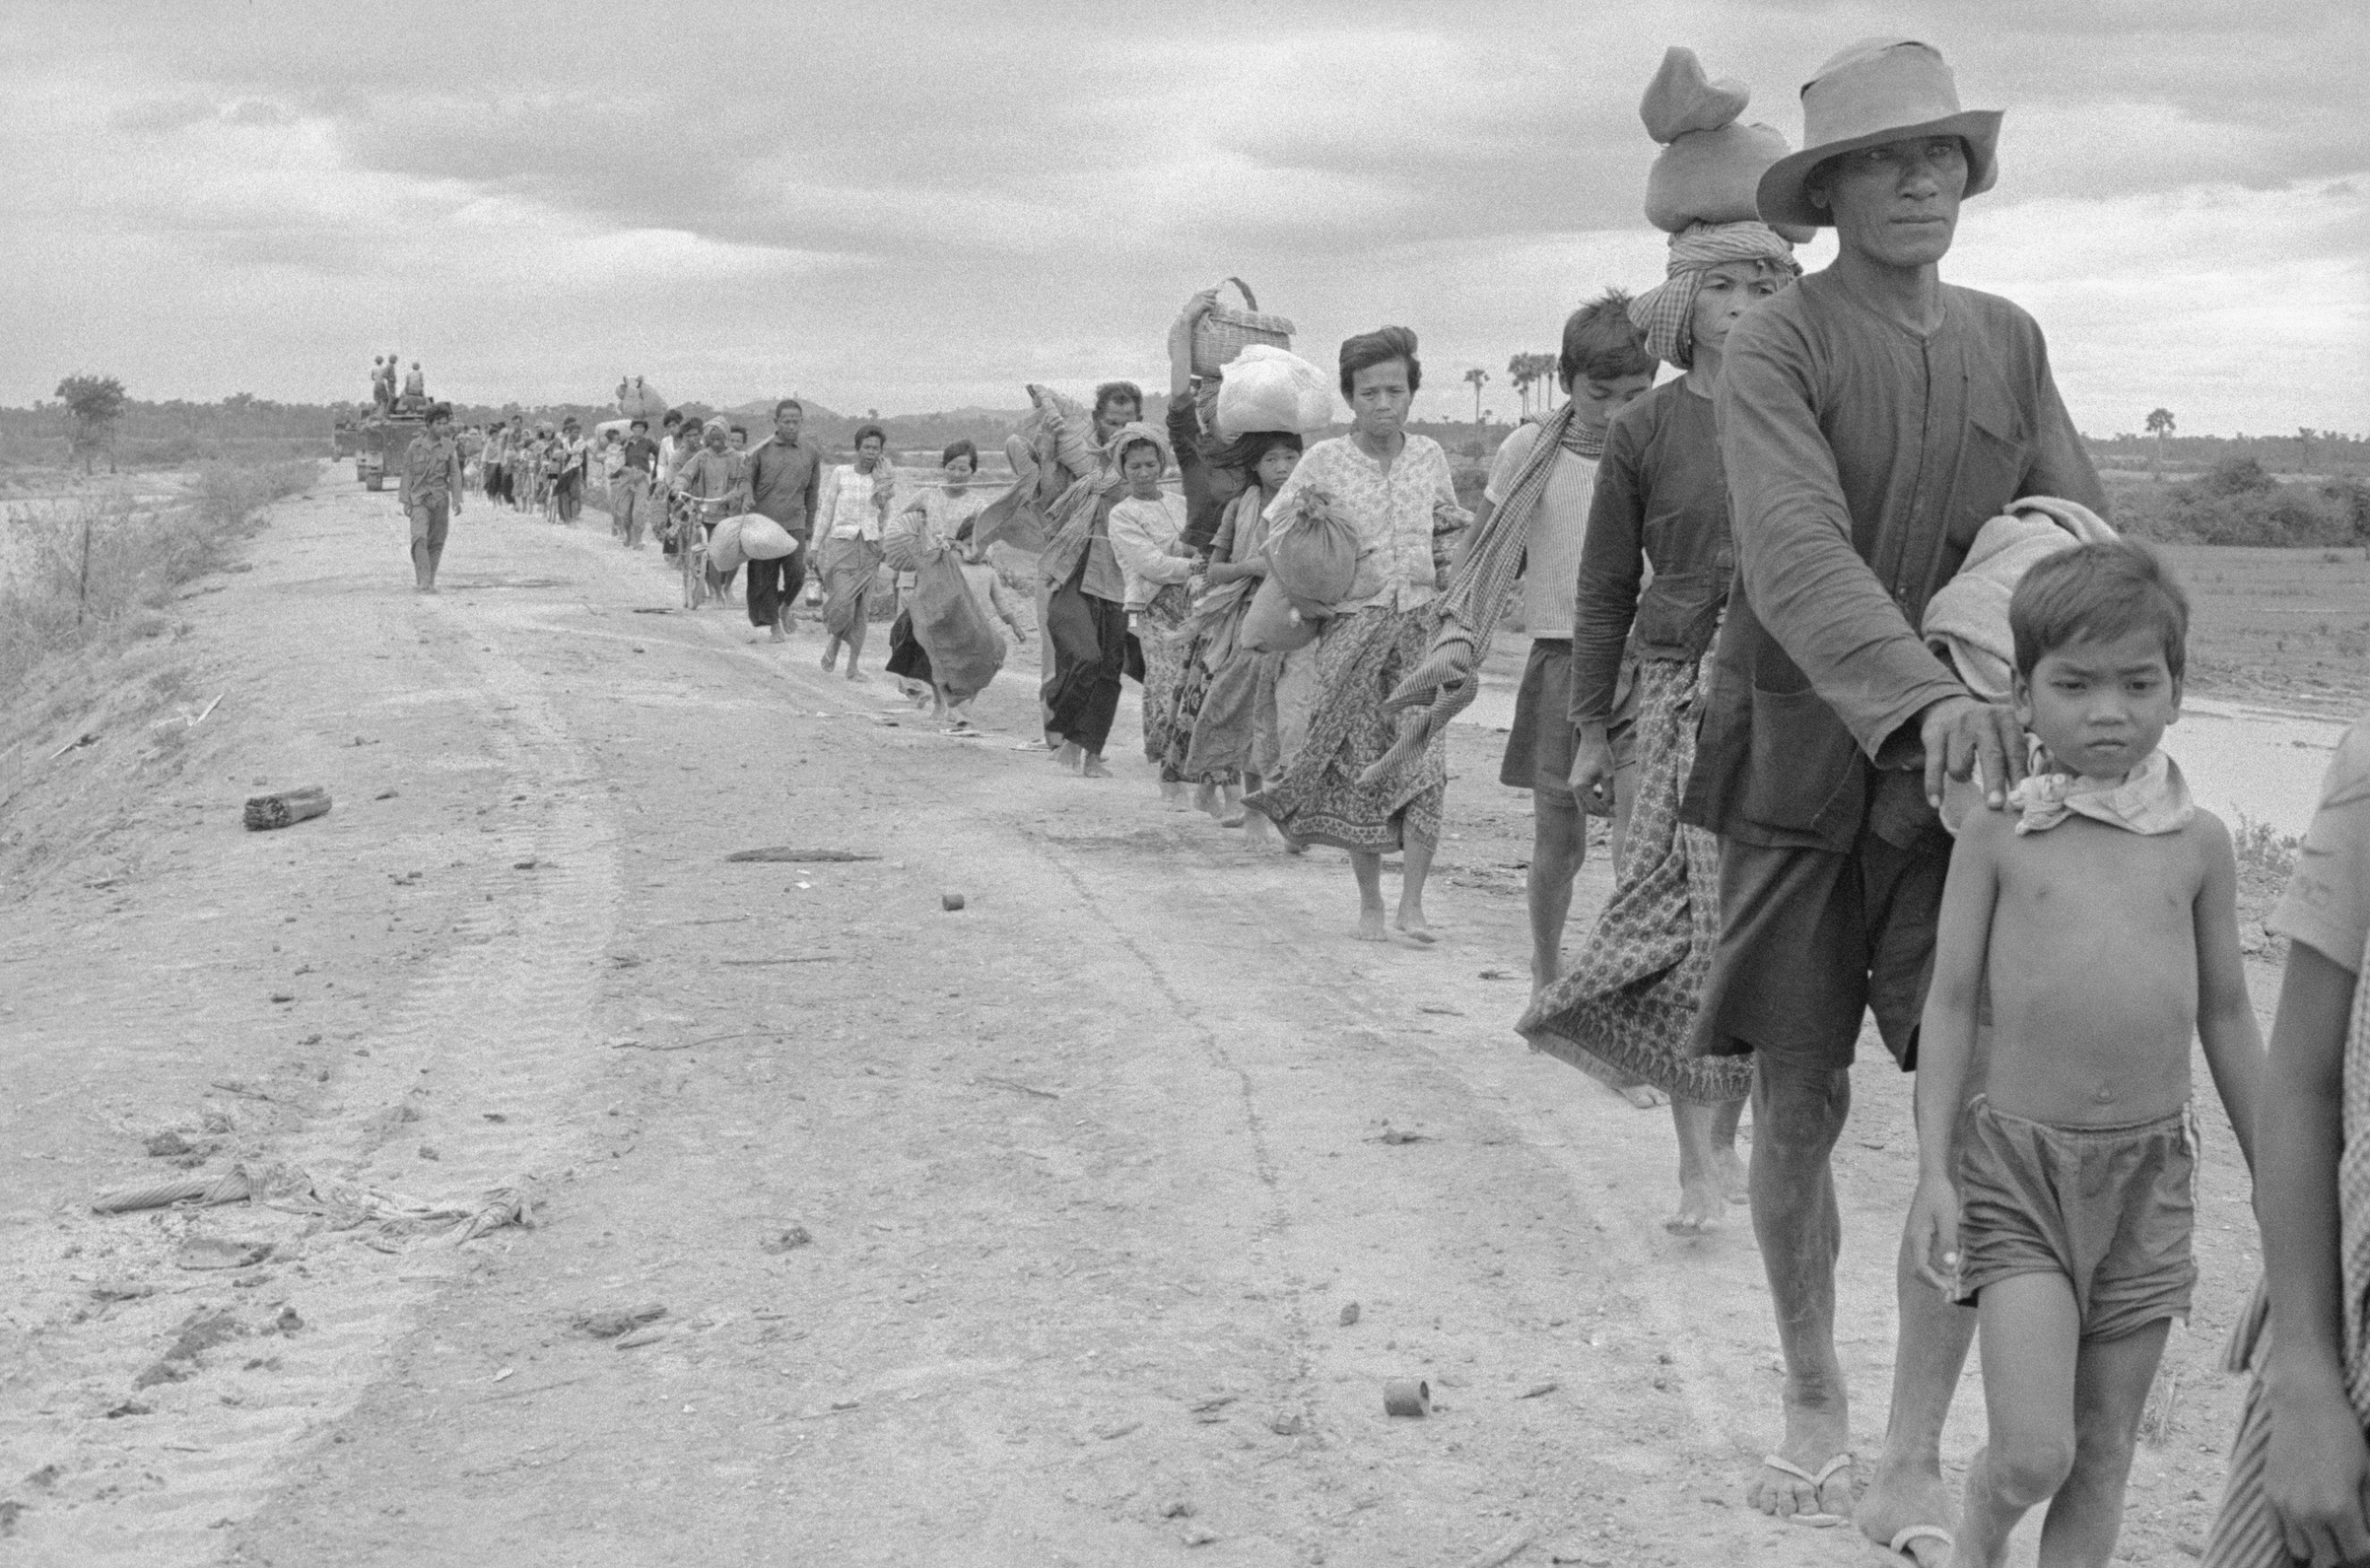 Long lines of refugees on the move some 17 kilometers from the capital in Cambodia in 1975